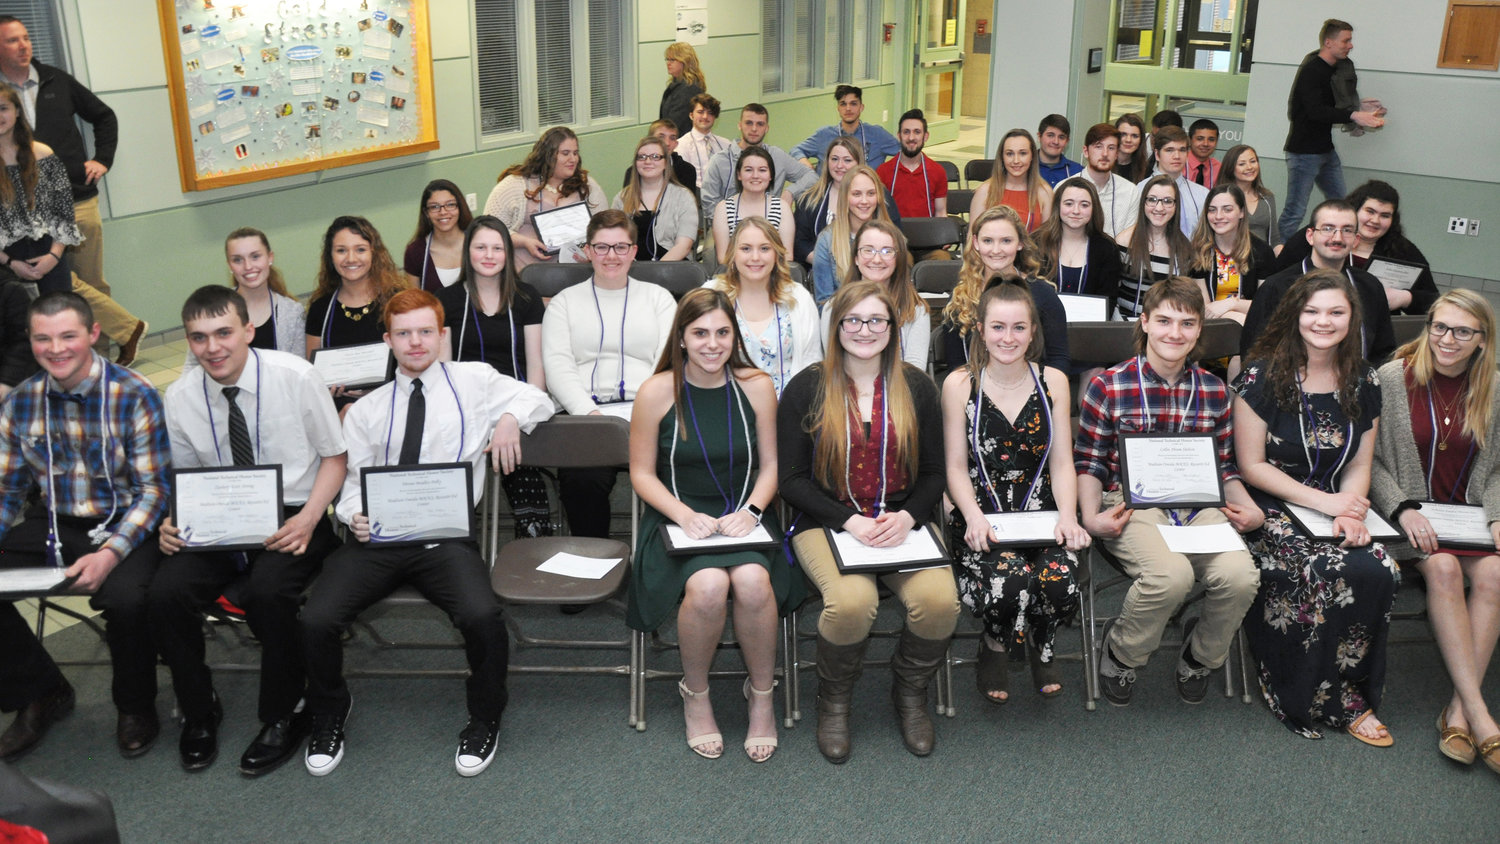 BOCES HONOR SOCIETY INDUCTEES — Shown here are some of the 112 students from nine local school districts who were inducted into the MOBOCES chapter of the National Technical Honor Society.